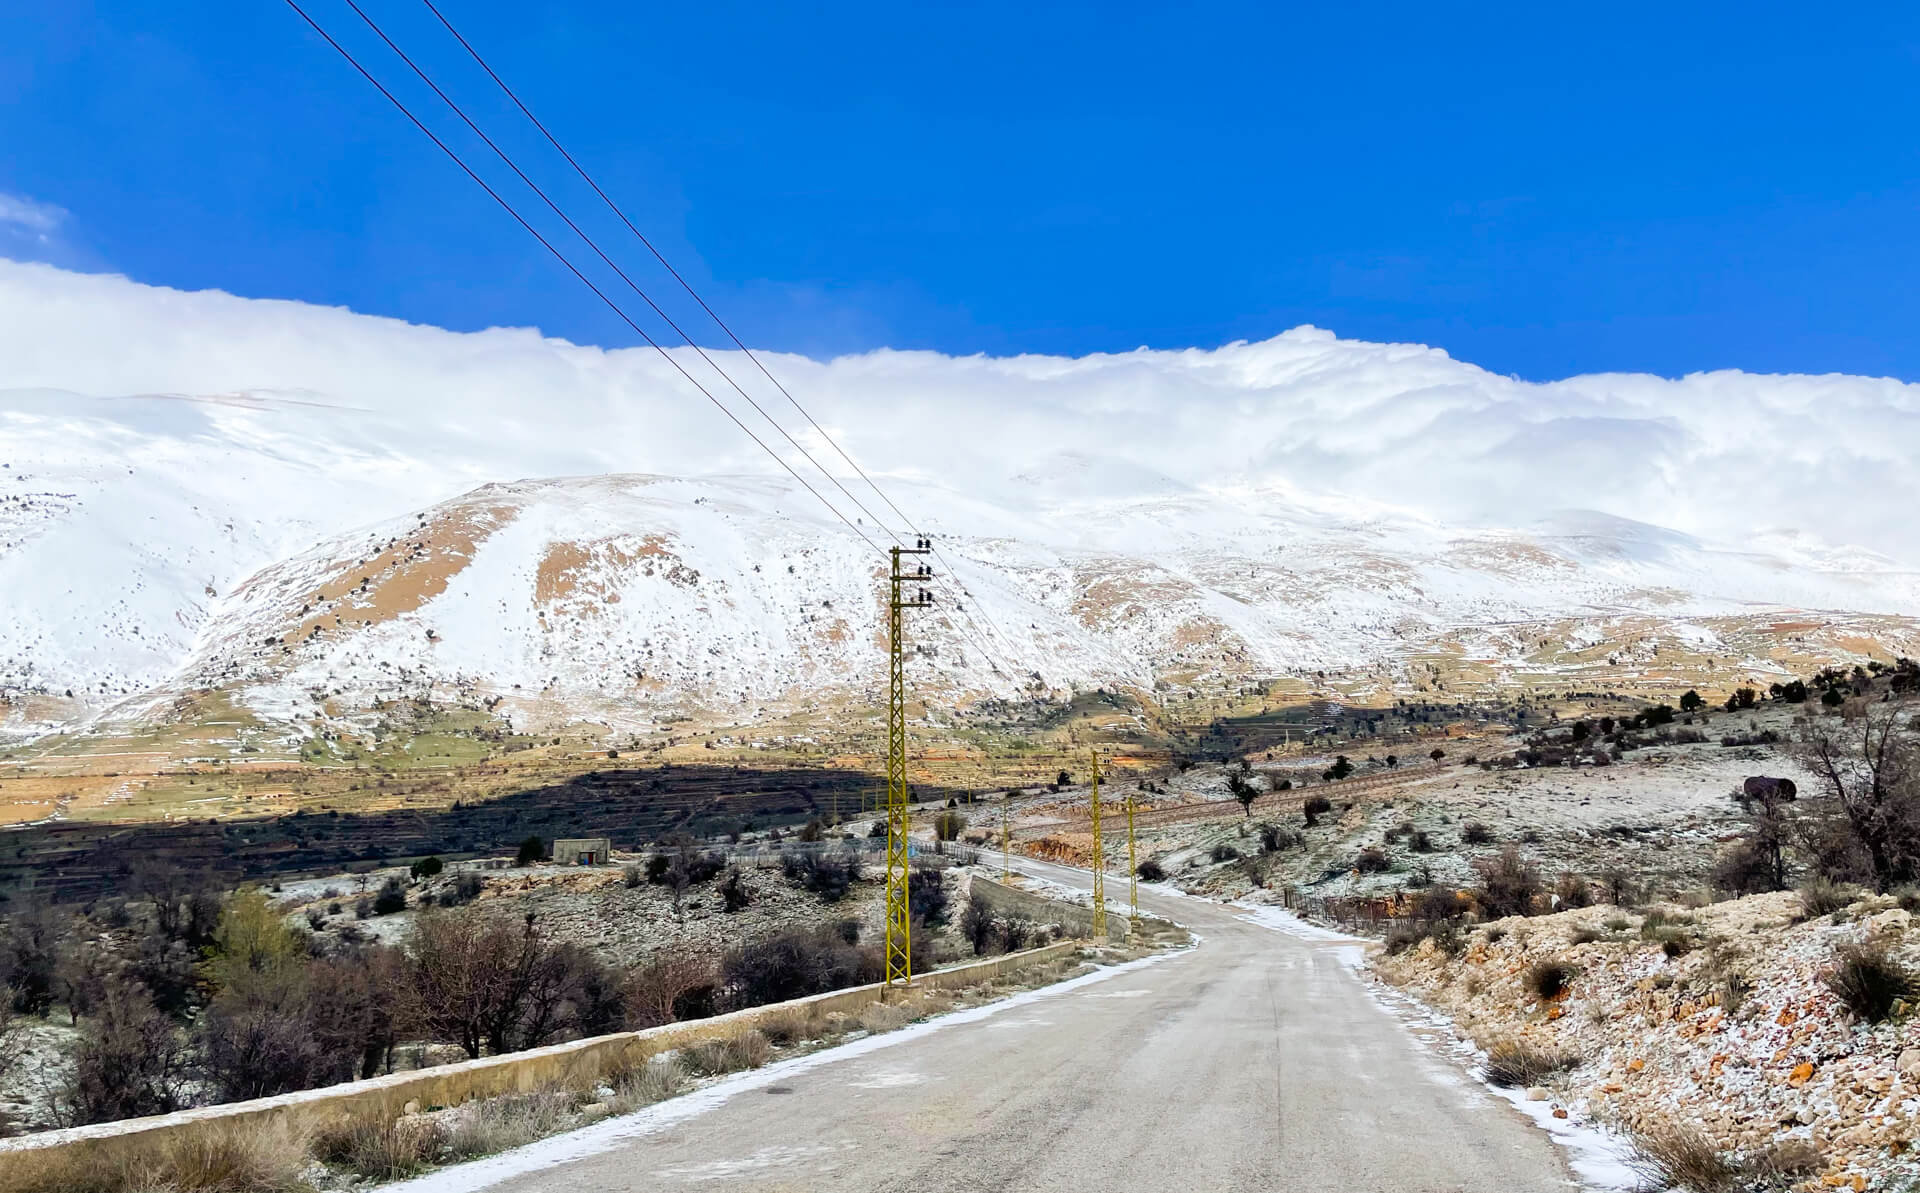 A country road heading towards a mountain range, which is covered in snow.